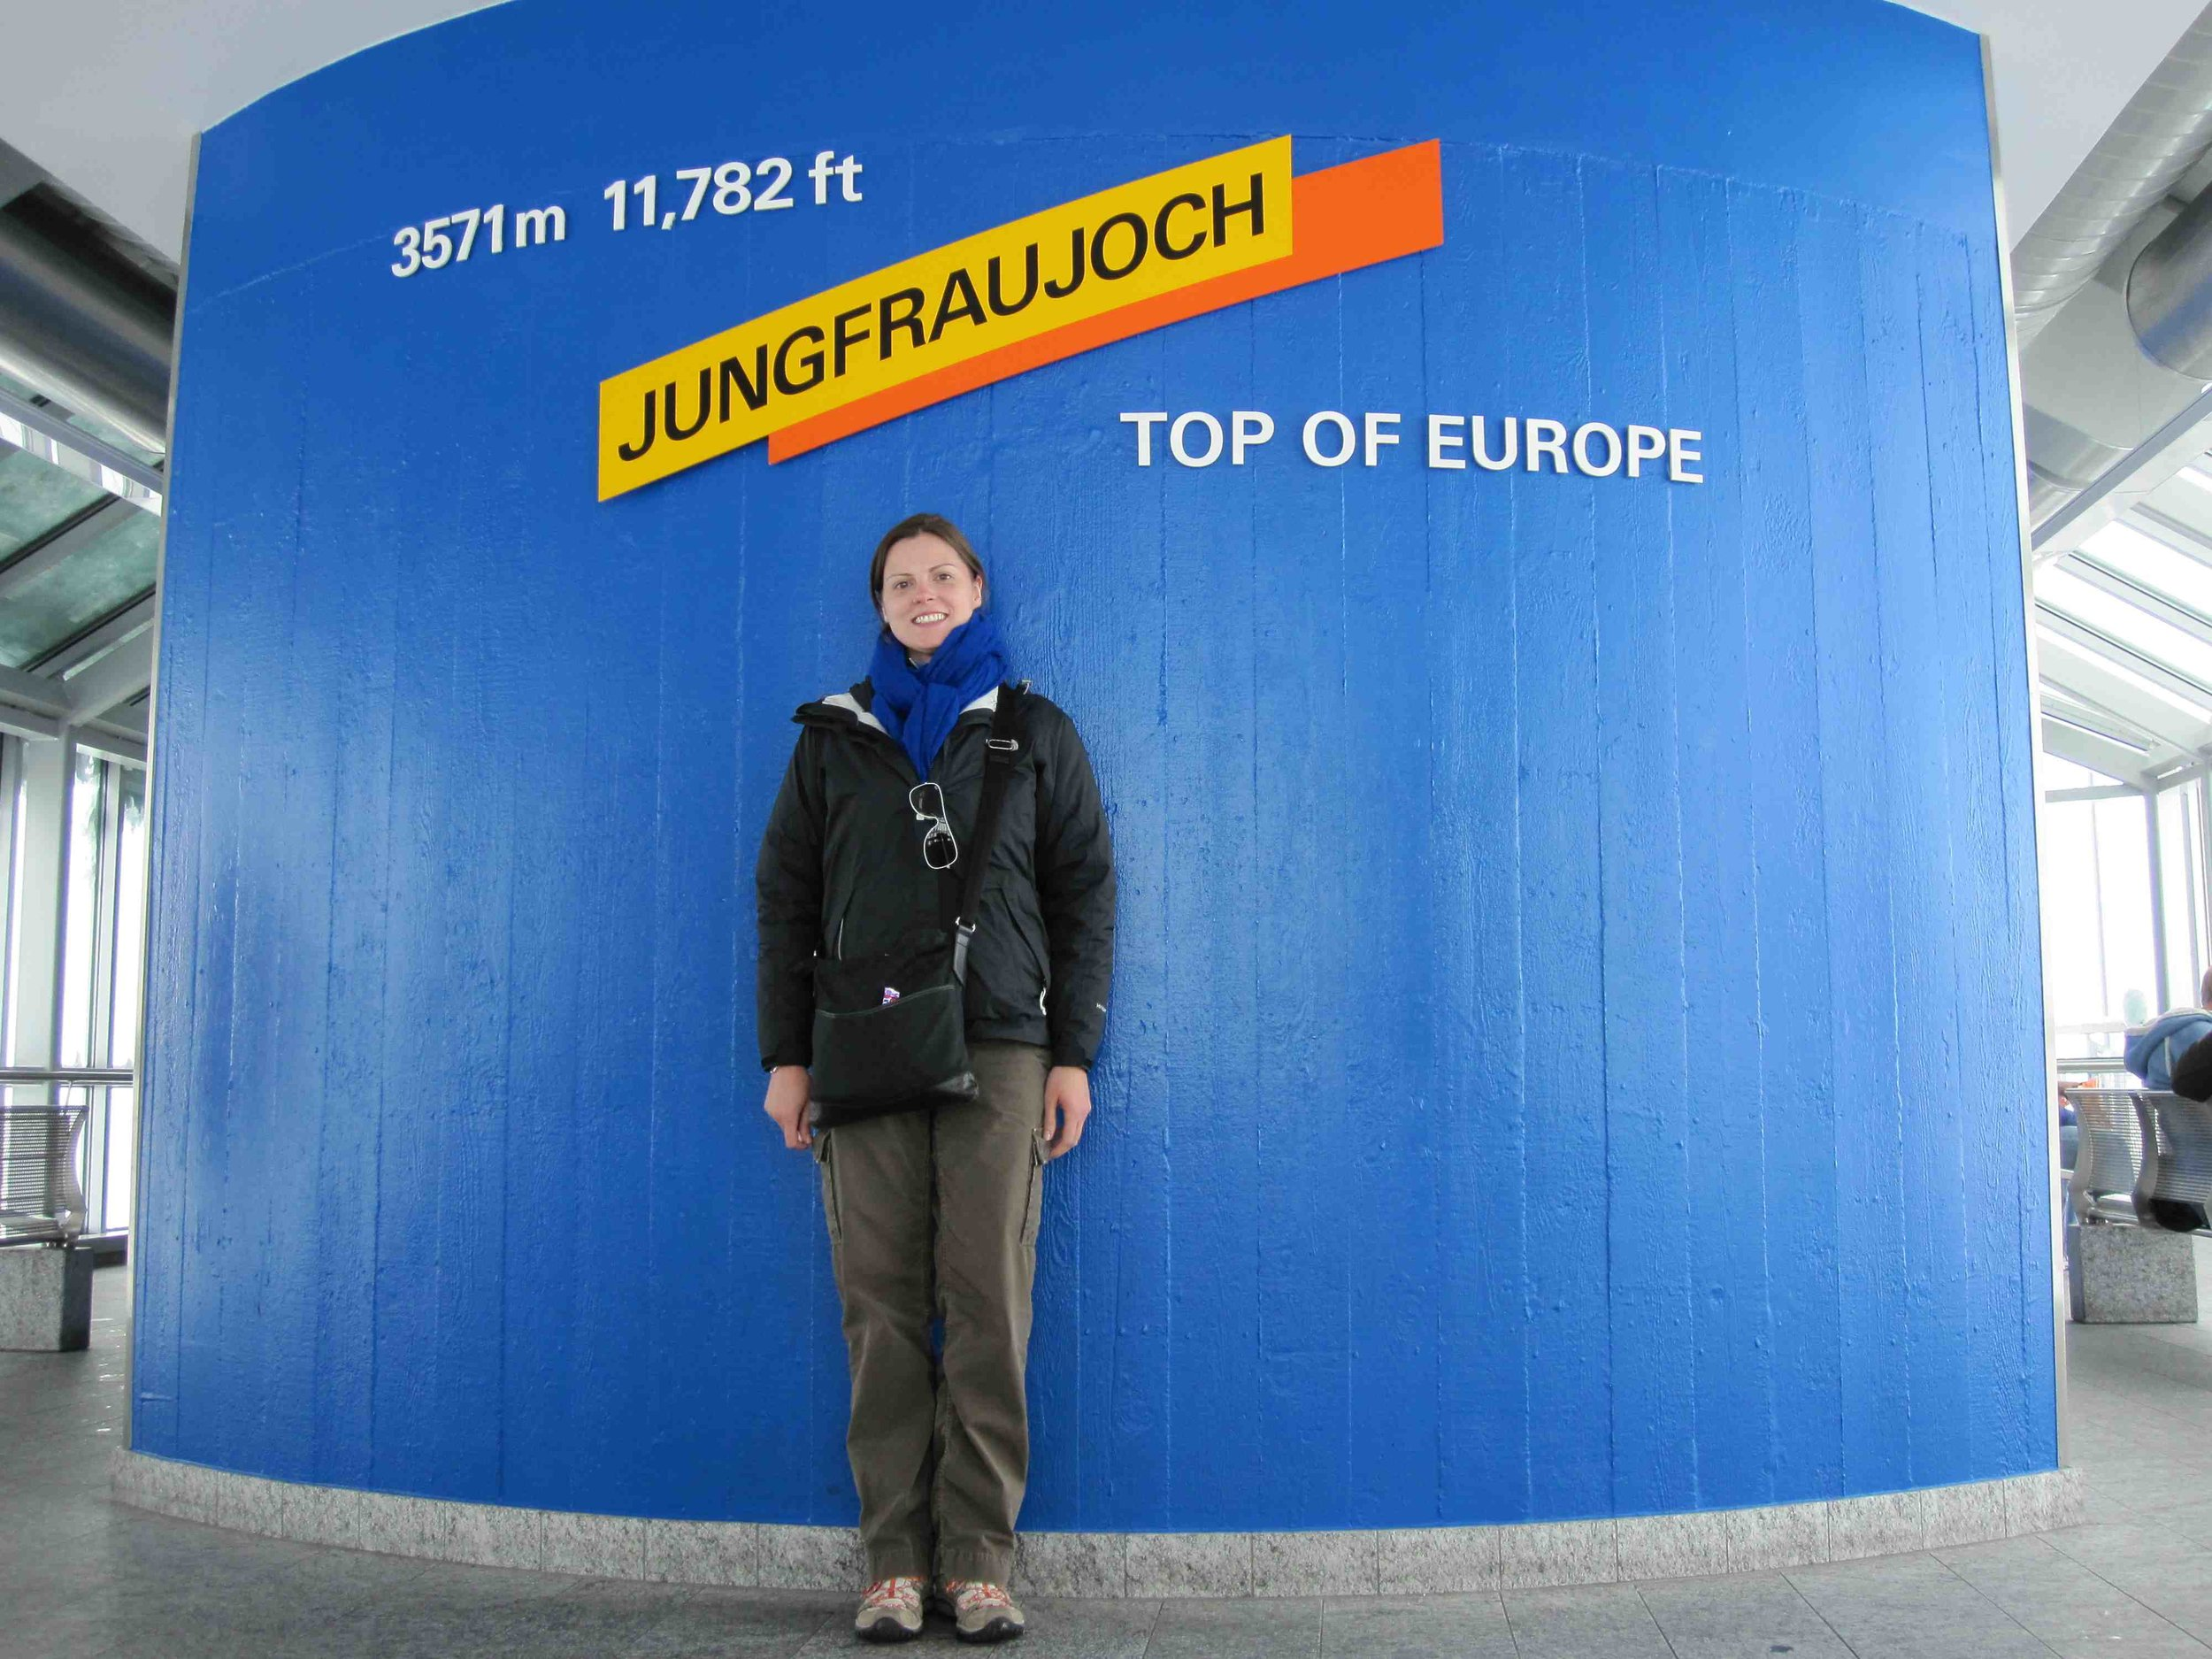 Jungfraujoch, Switzerland (North Face)